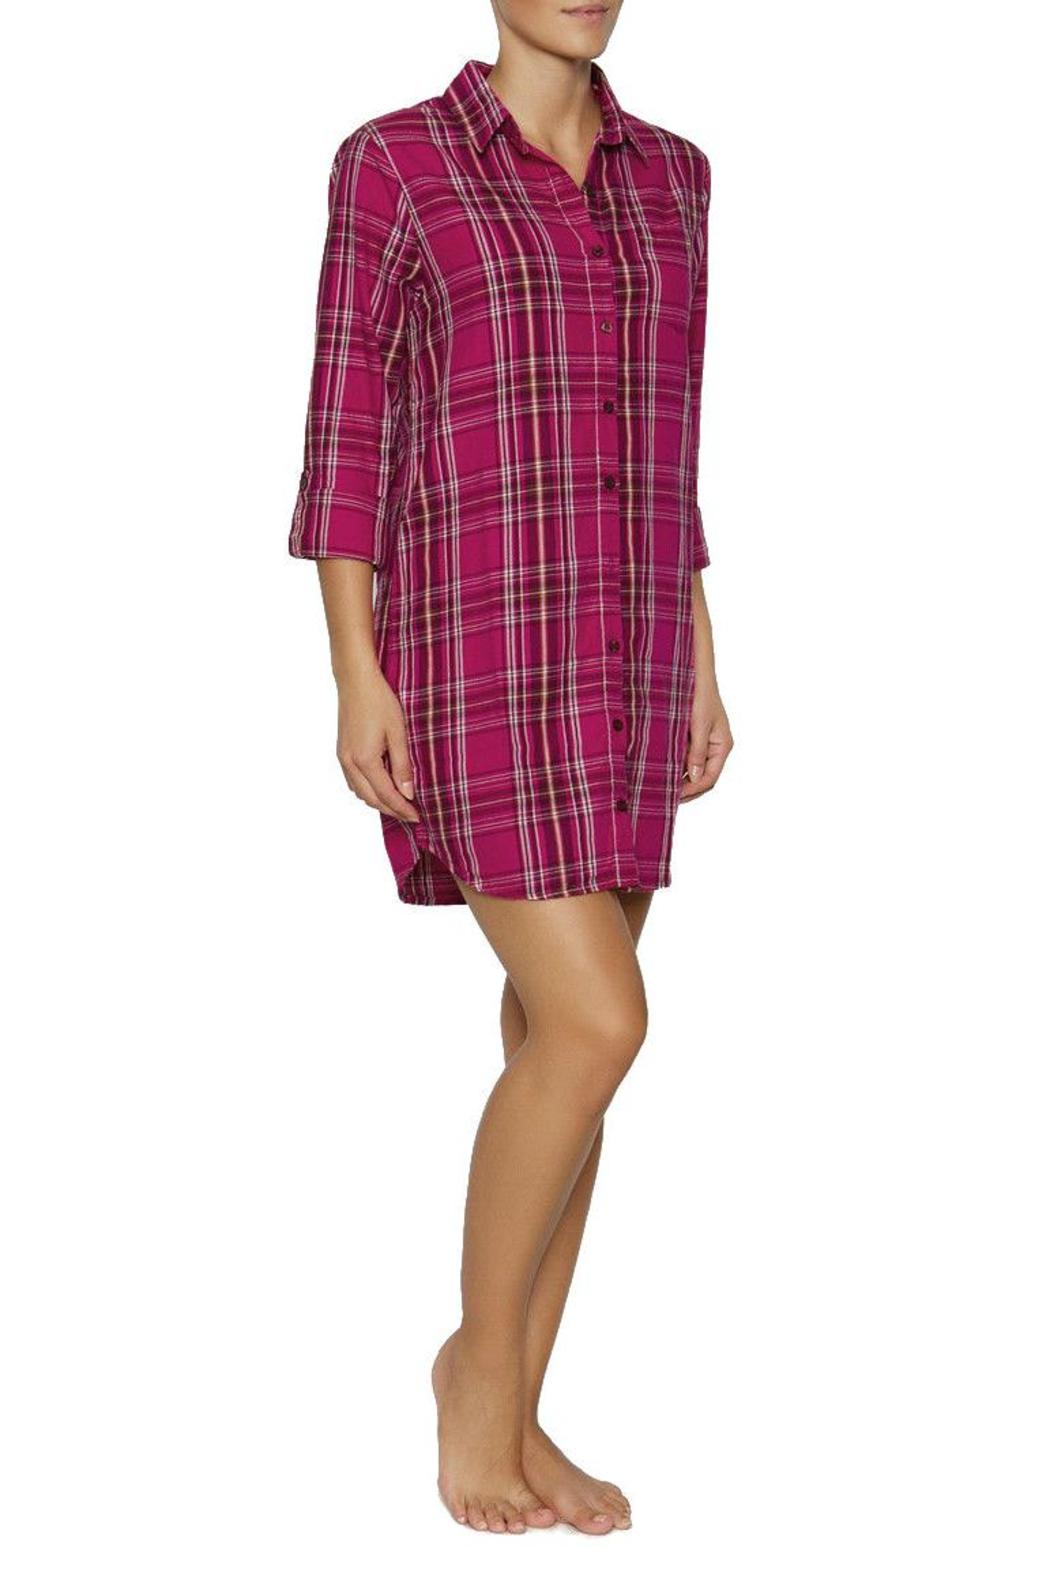 The Dressing Room Fuchsia Plaid Nightshirt - Front Cropped Image